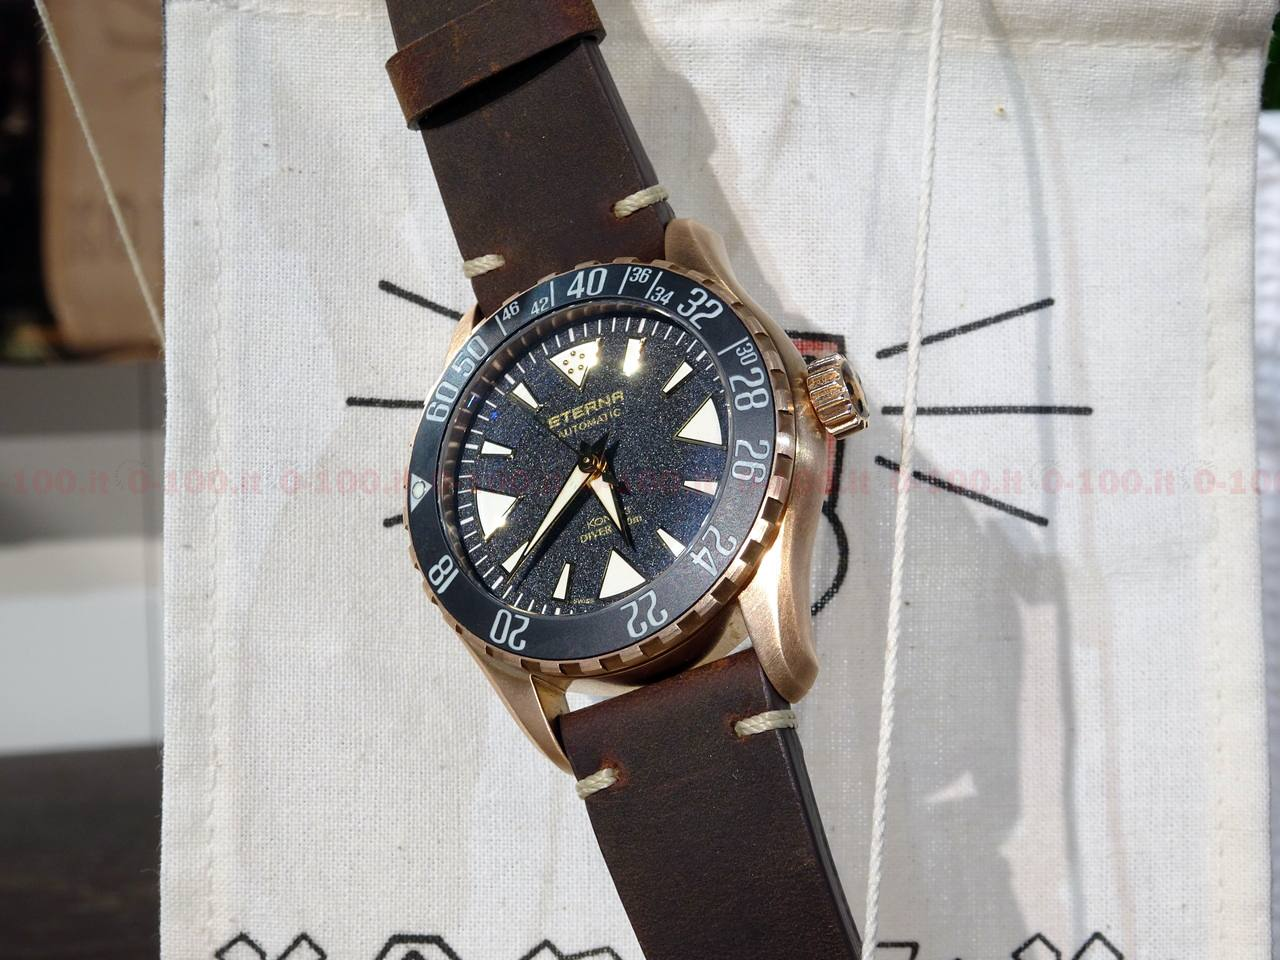 baselworld-2017-ETERNA KONTIKI BRONZE MANUFACTURE LIMITED EDITION REF. 1291.78.49.1422-prezzo-price_0-1003